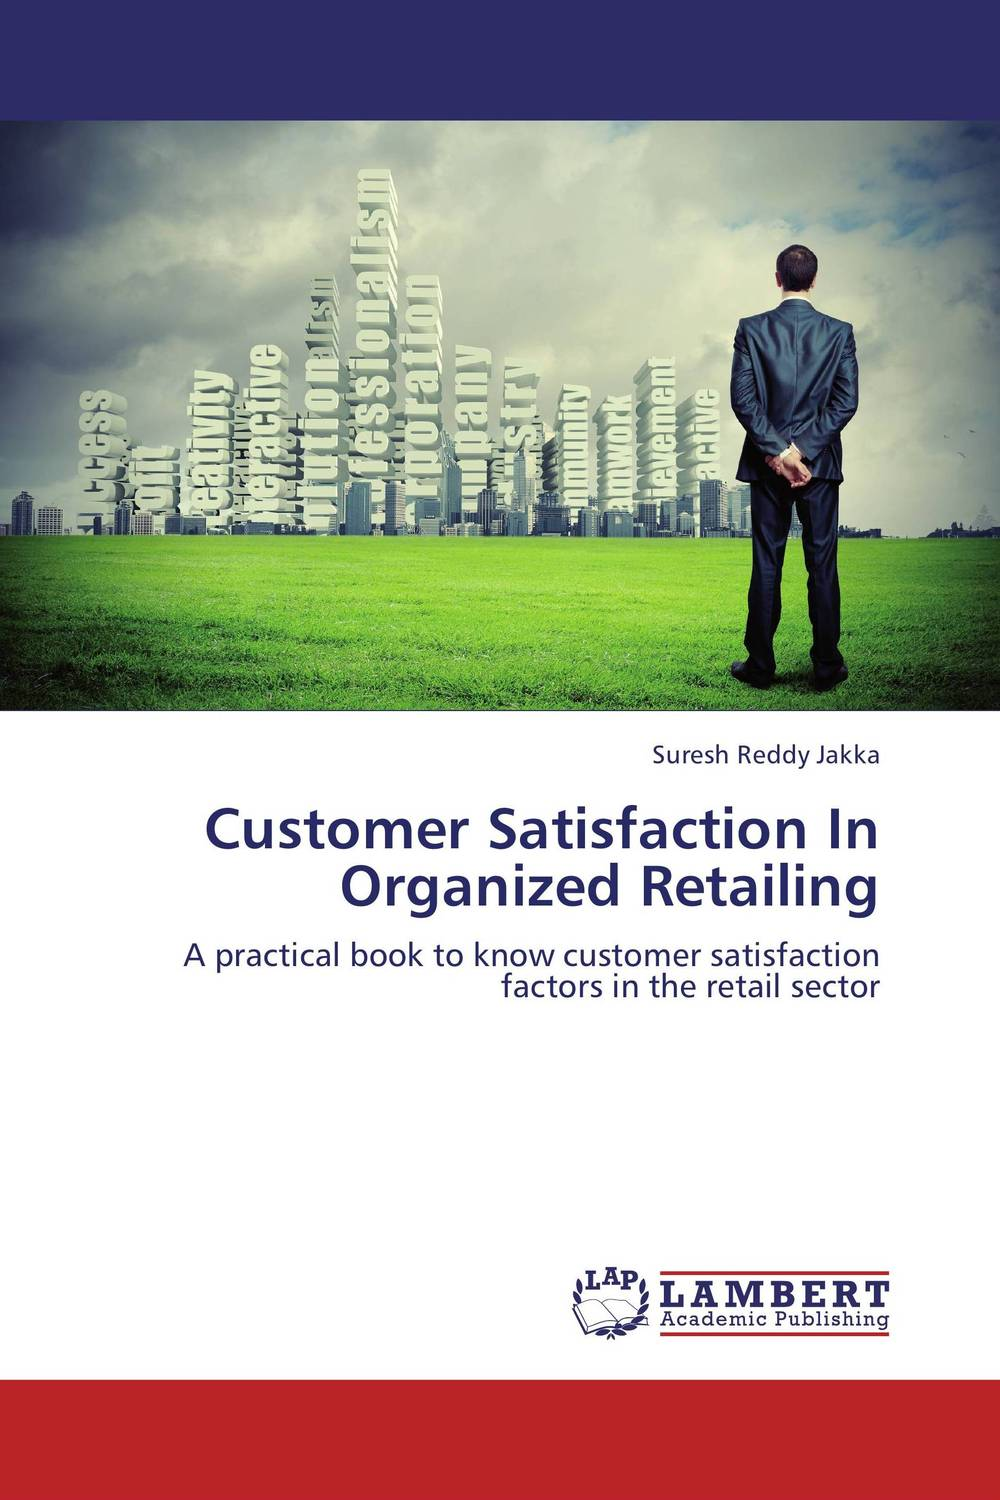 Customer Satisfaction In Organized Retailing michel chevalier luxury retail management how the world s top brands provide quality product and service support